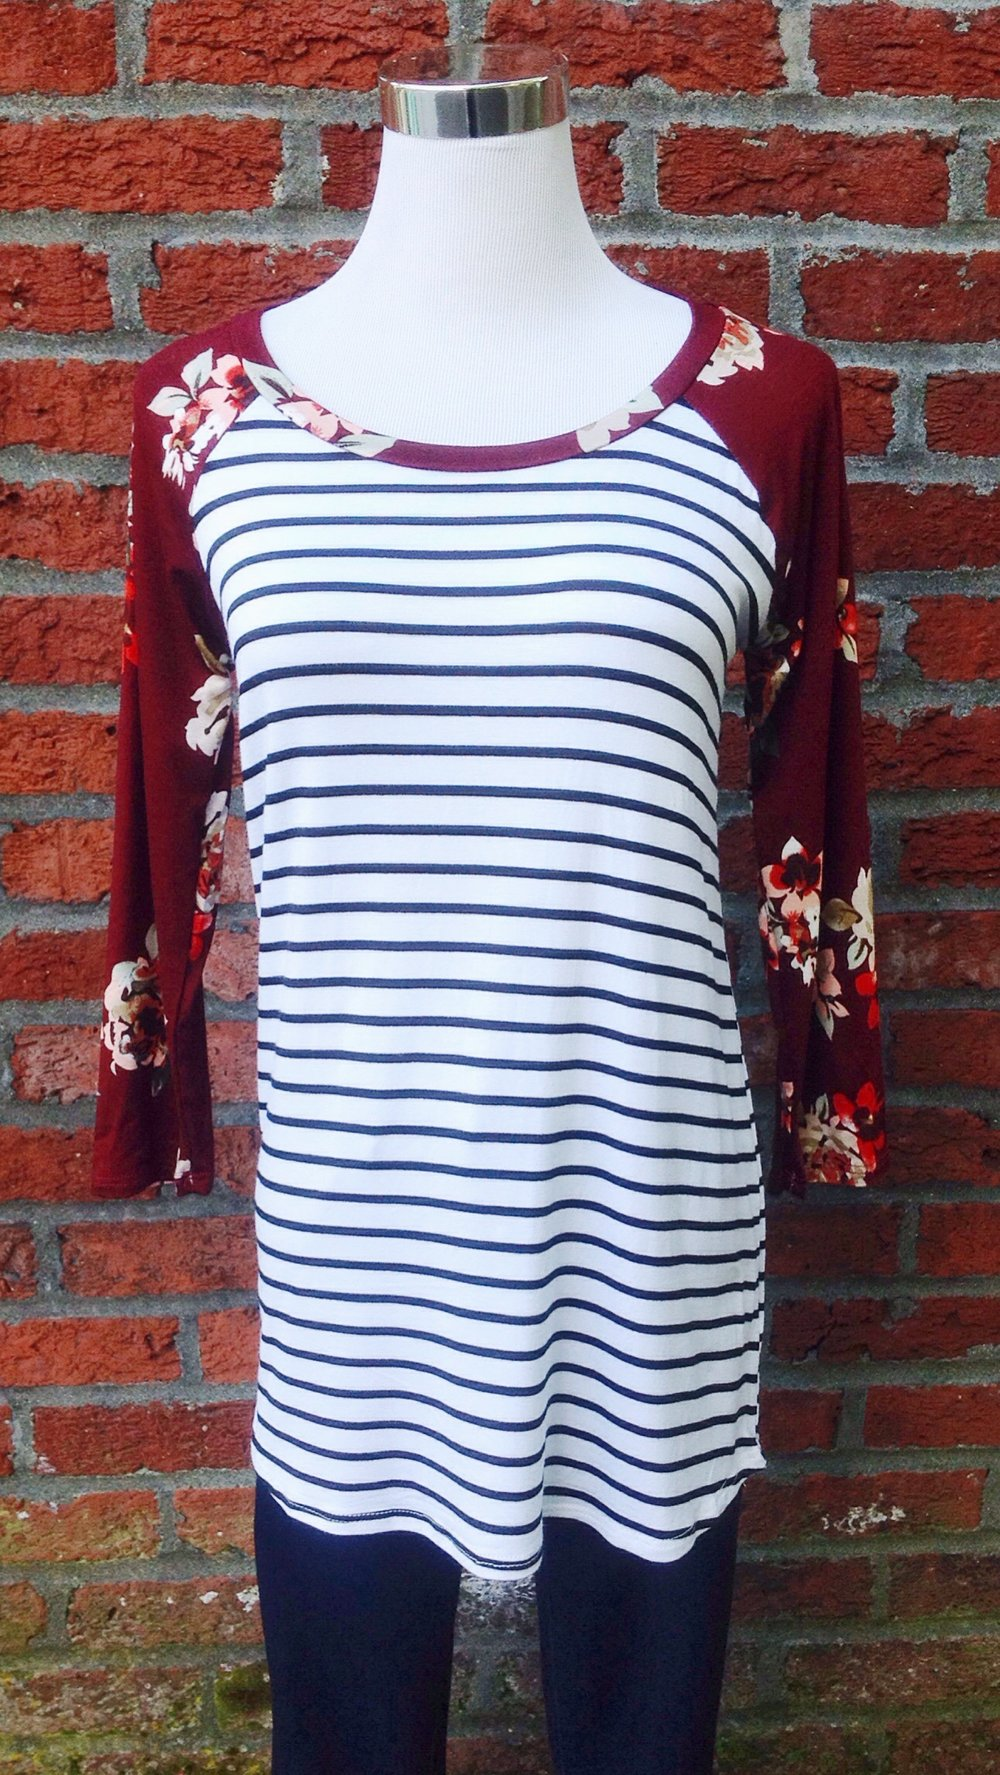 Stripe jersey knit baseball top with contrasting floral sleeves, $28